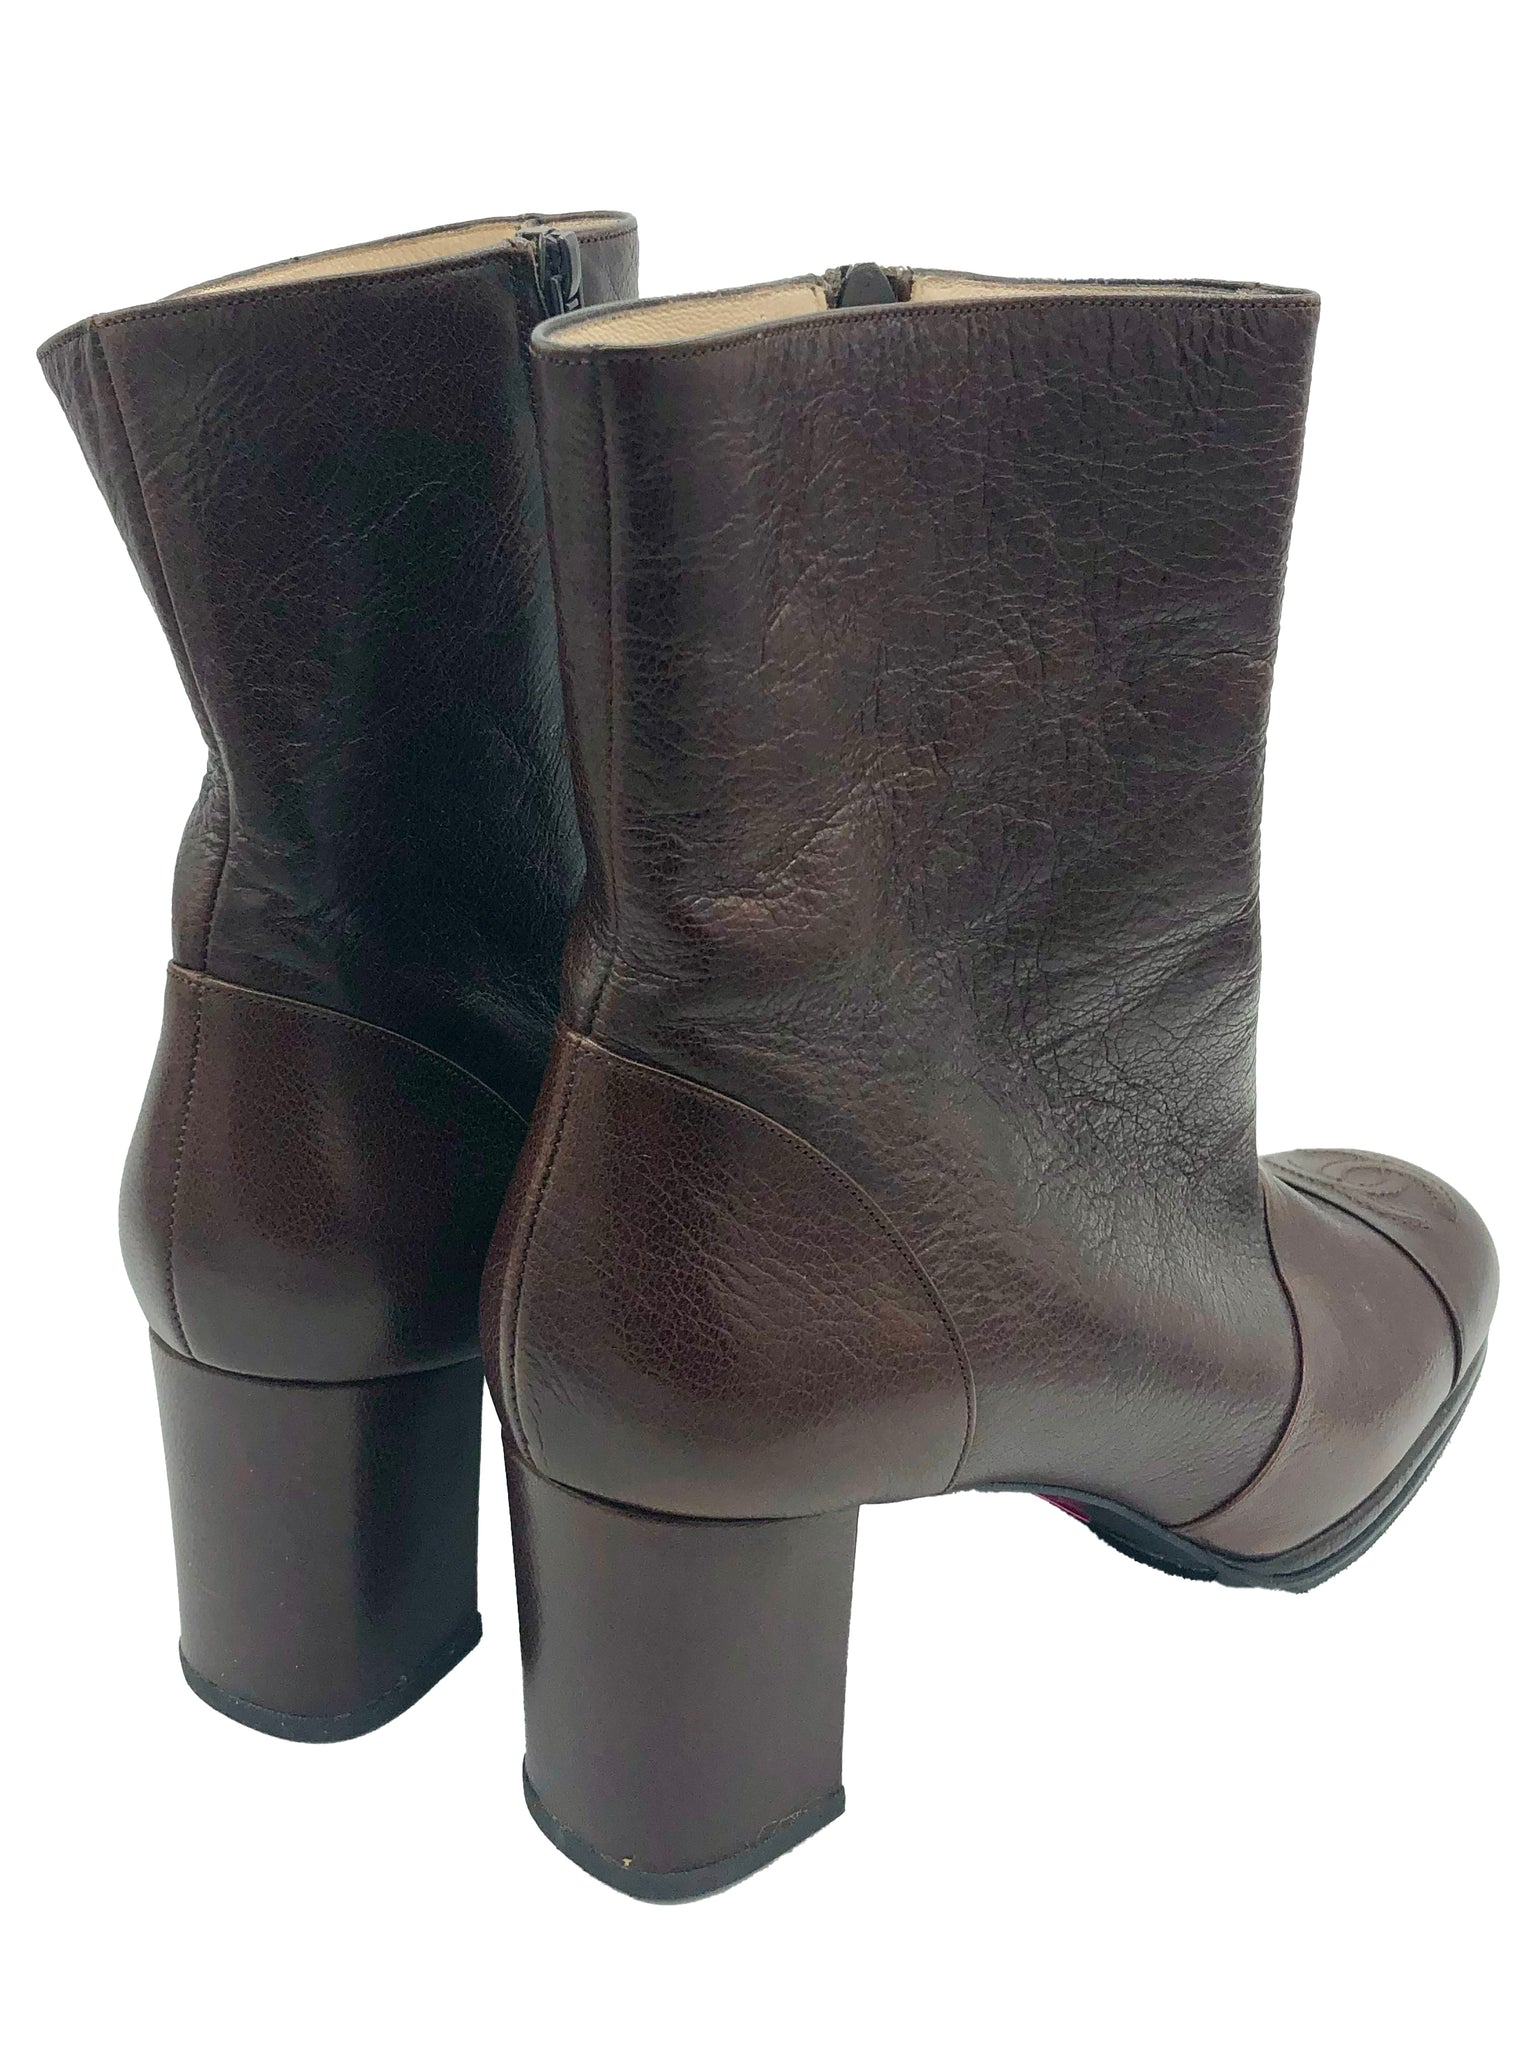 Chanel Early 2000s Chocolate Brown Ankle Boots with CC Logo BACK 3 of 4